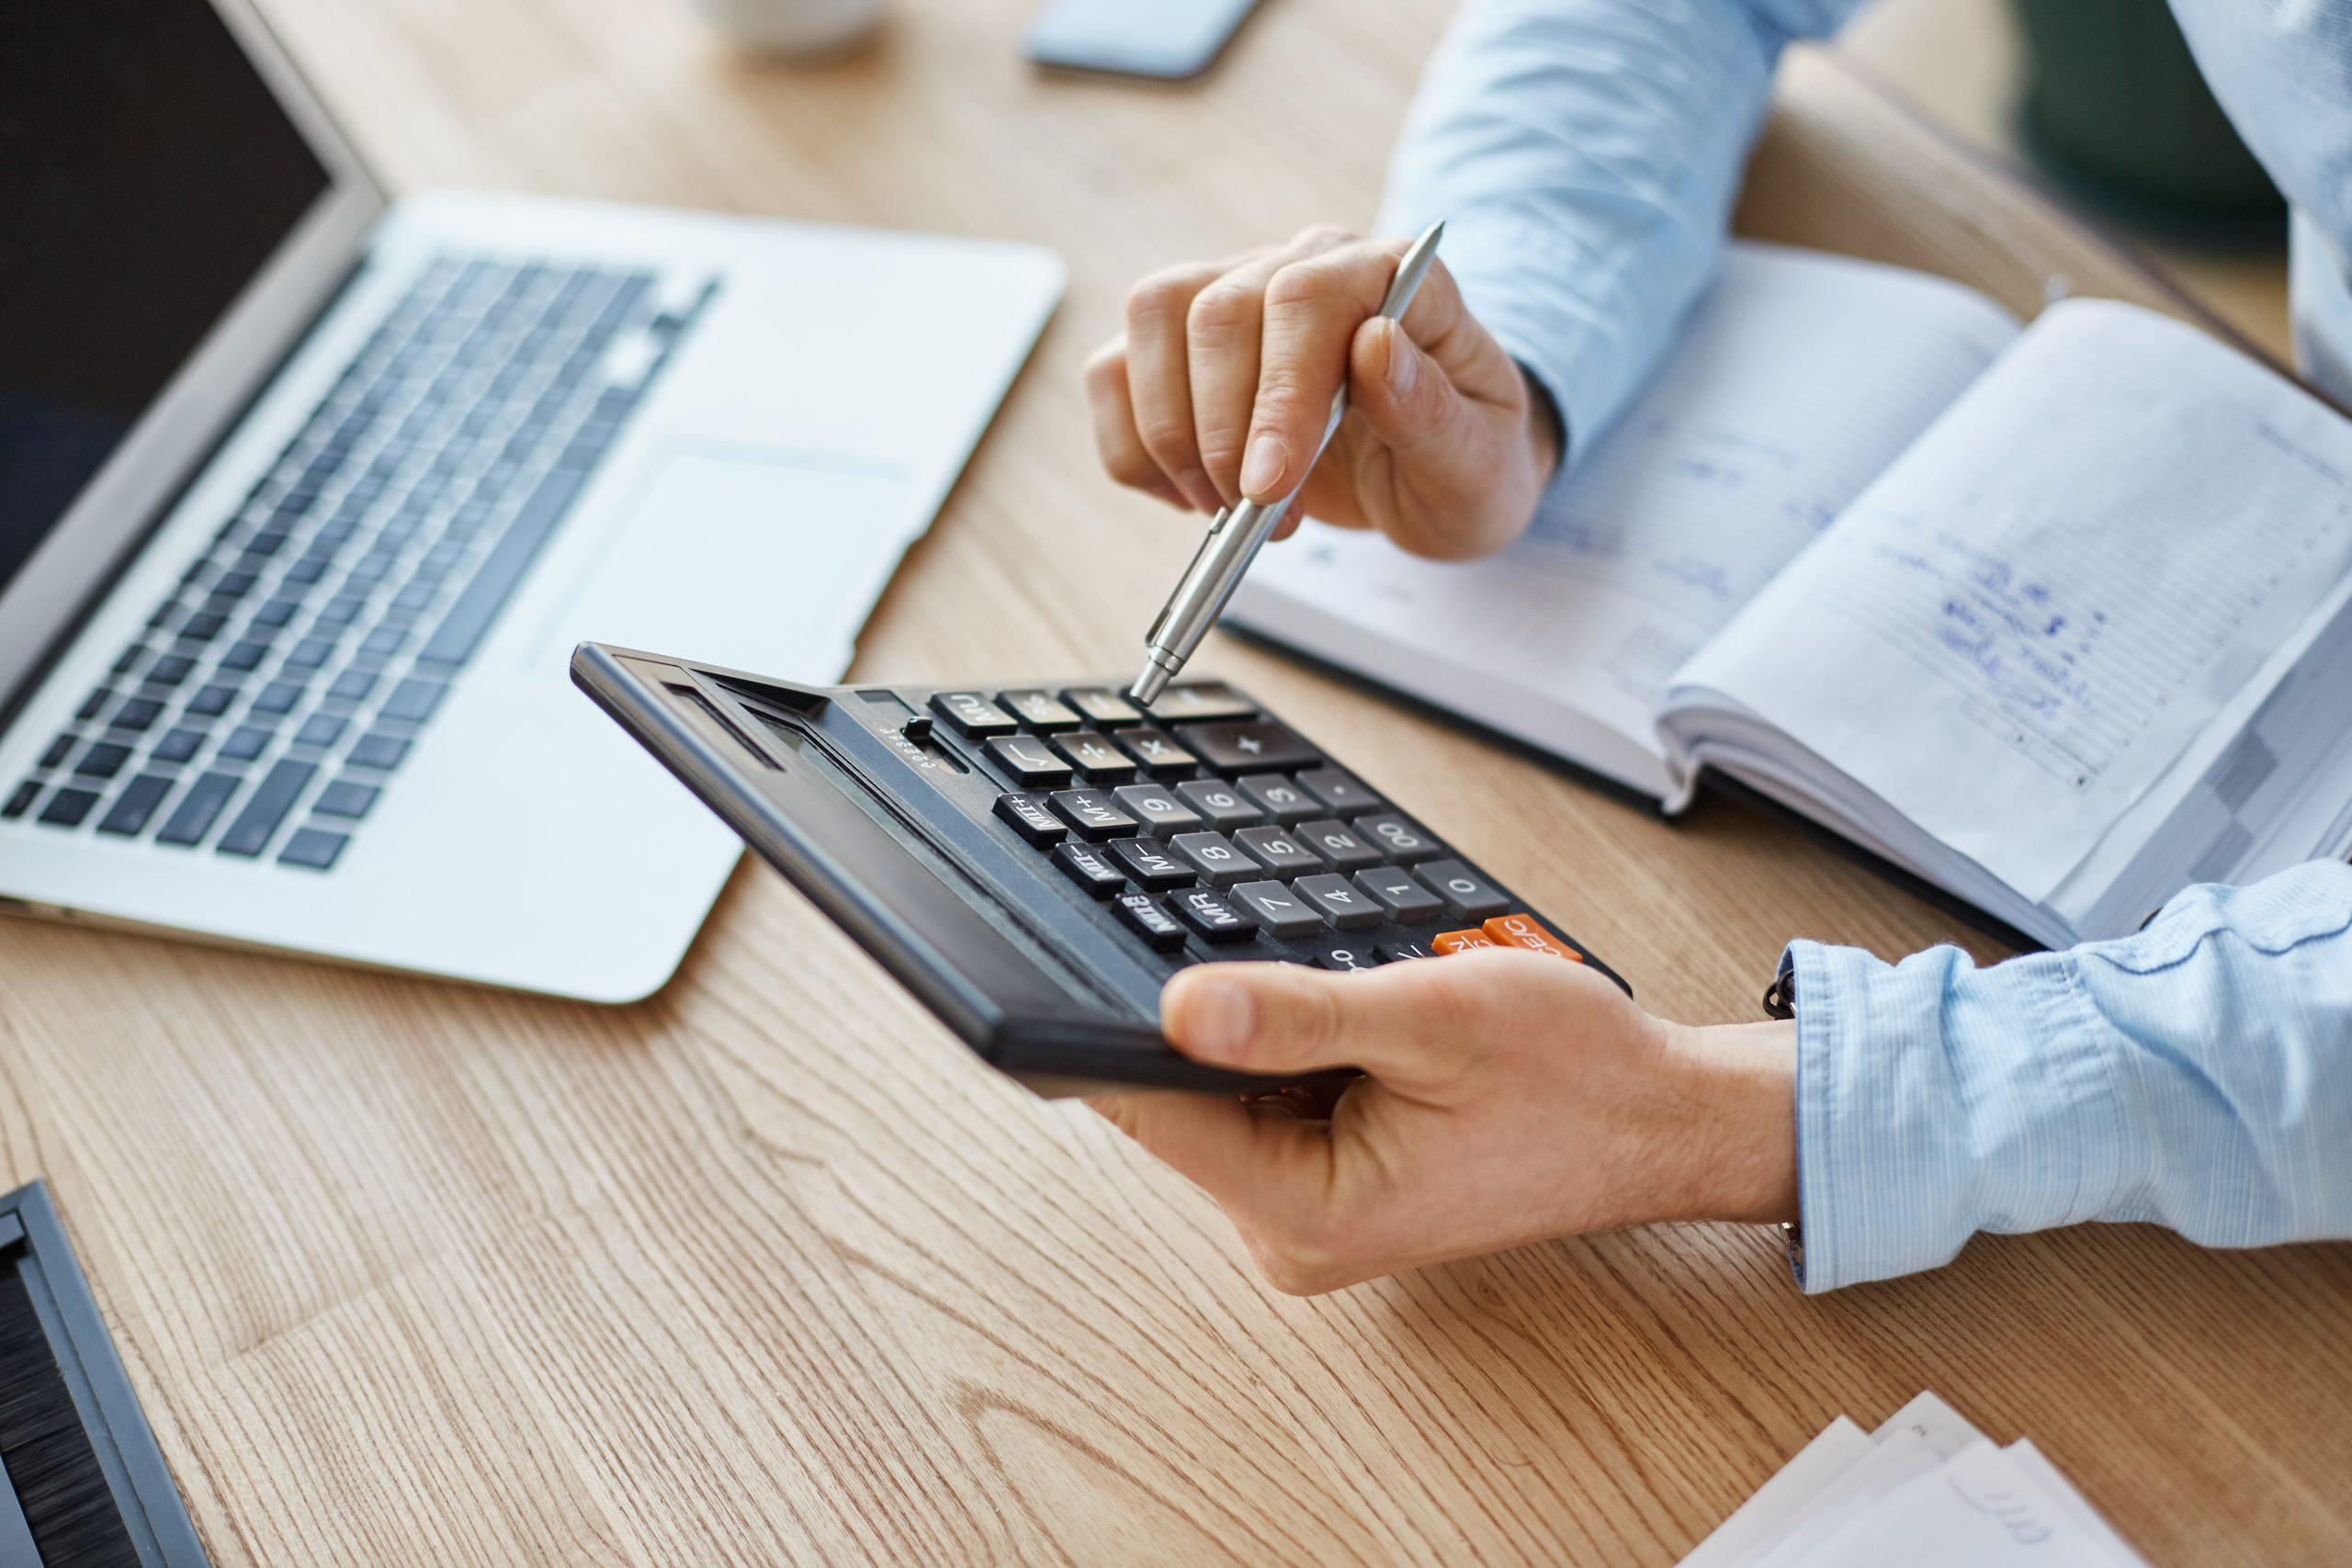 Cropped view of professional serious finance manager, holding calculator in hands, checking company month's profits, looking through details on laptop, writing down information for meeting with director.